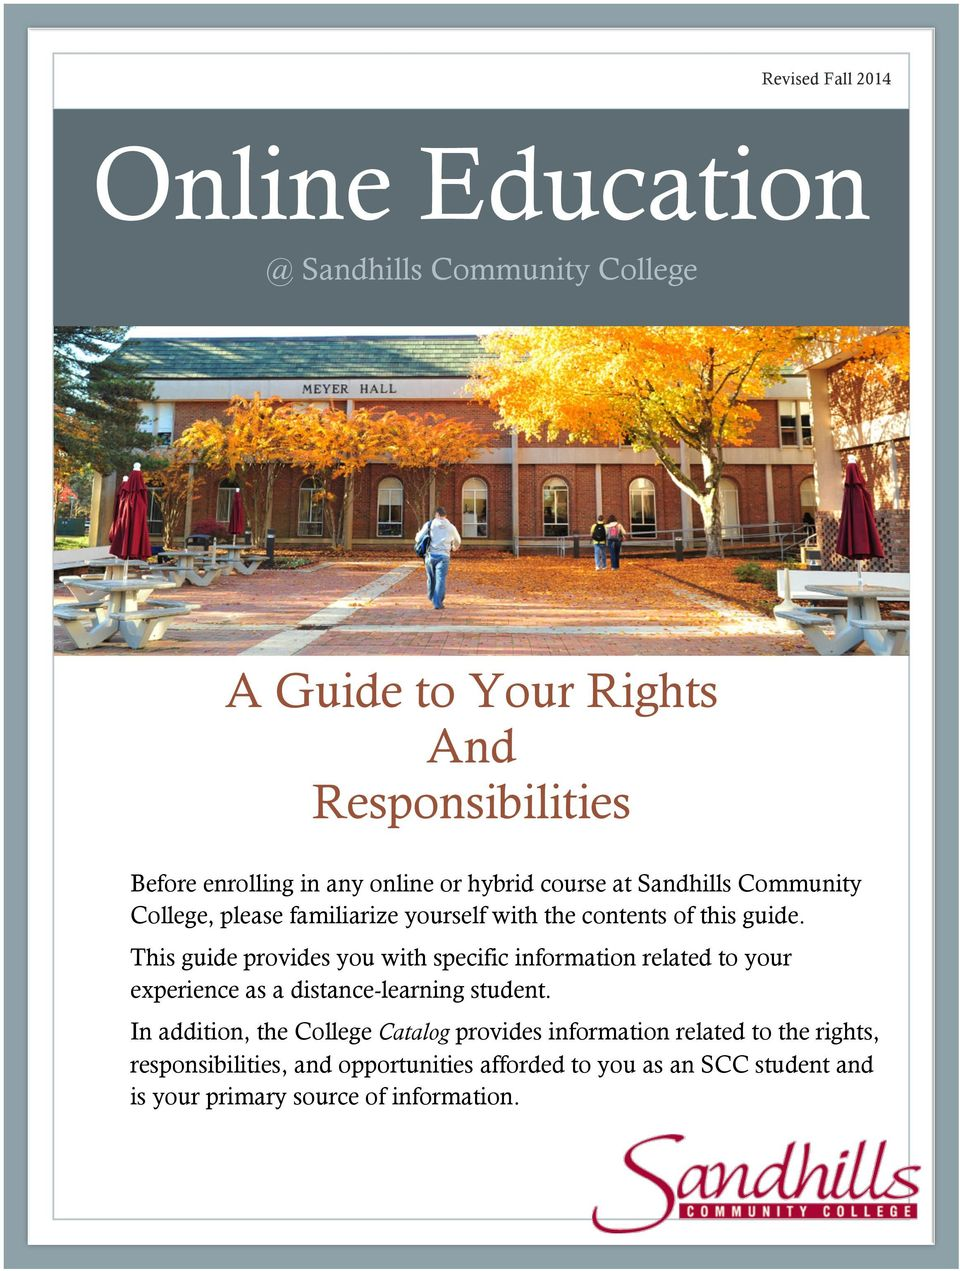 This guide provides you with specific information related to your experience as a distance-learning student.